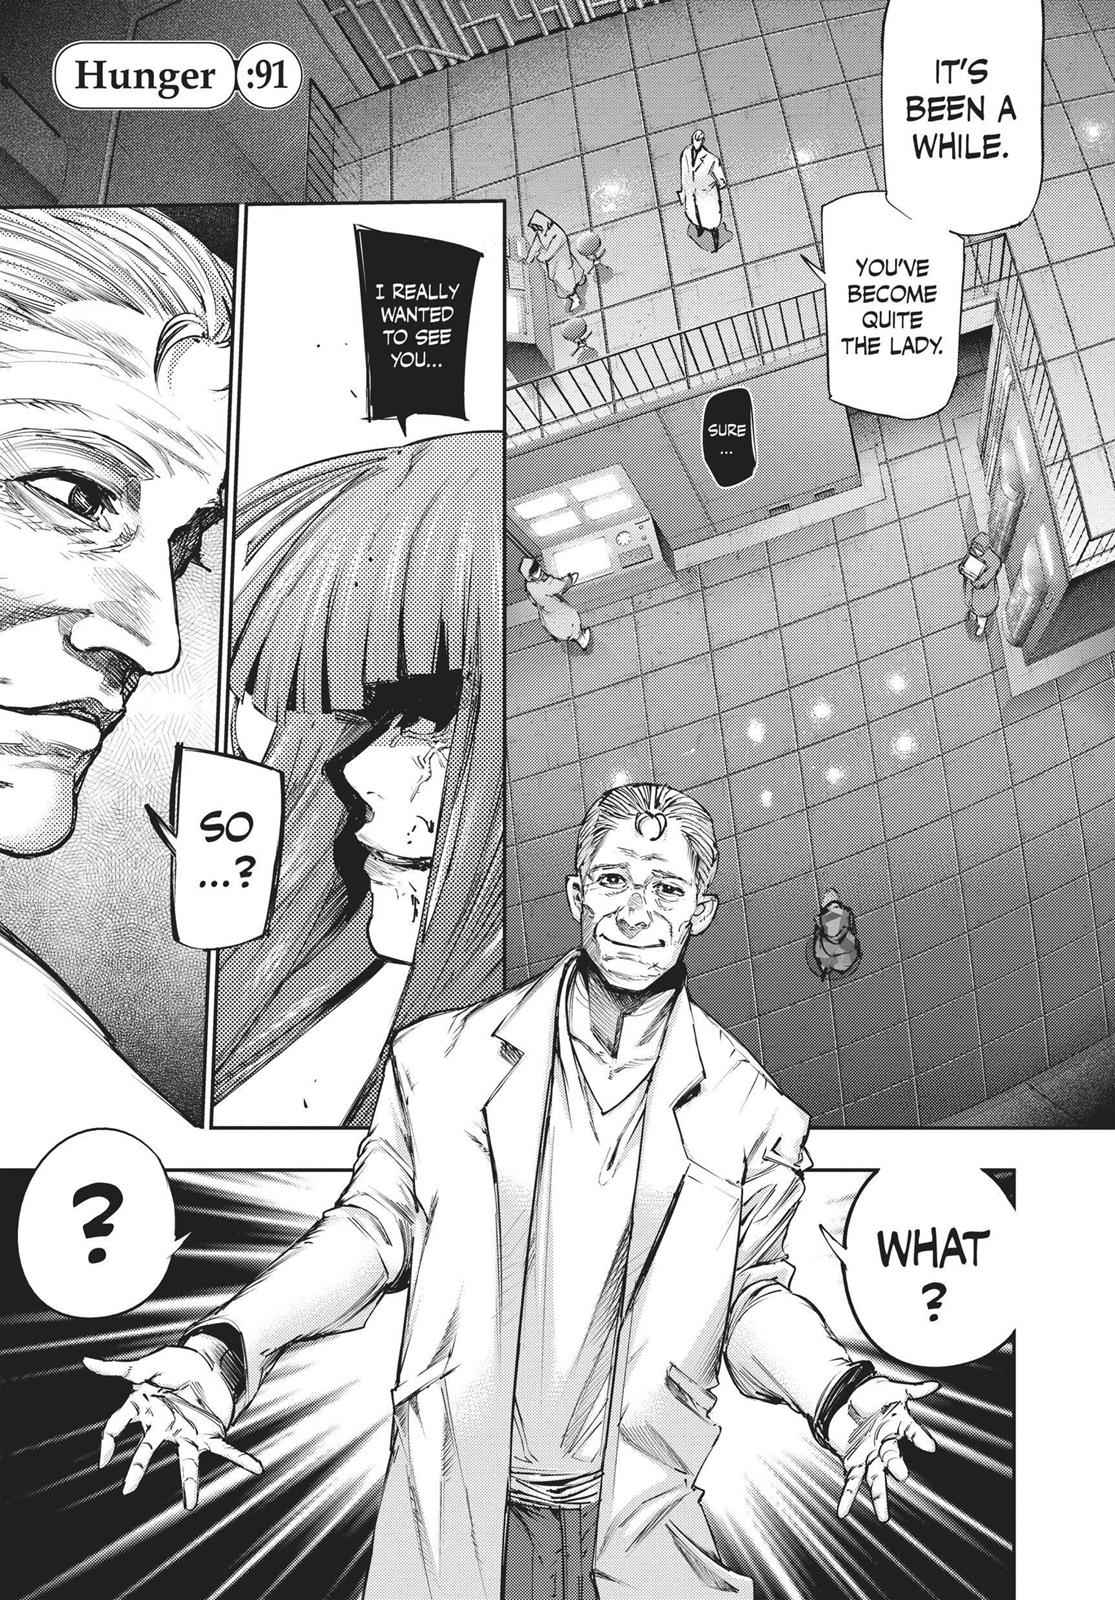 Tokyo Ghoul:re Chapter 91 Page 1